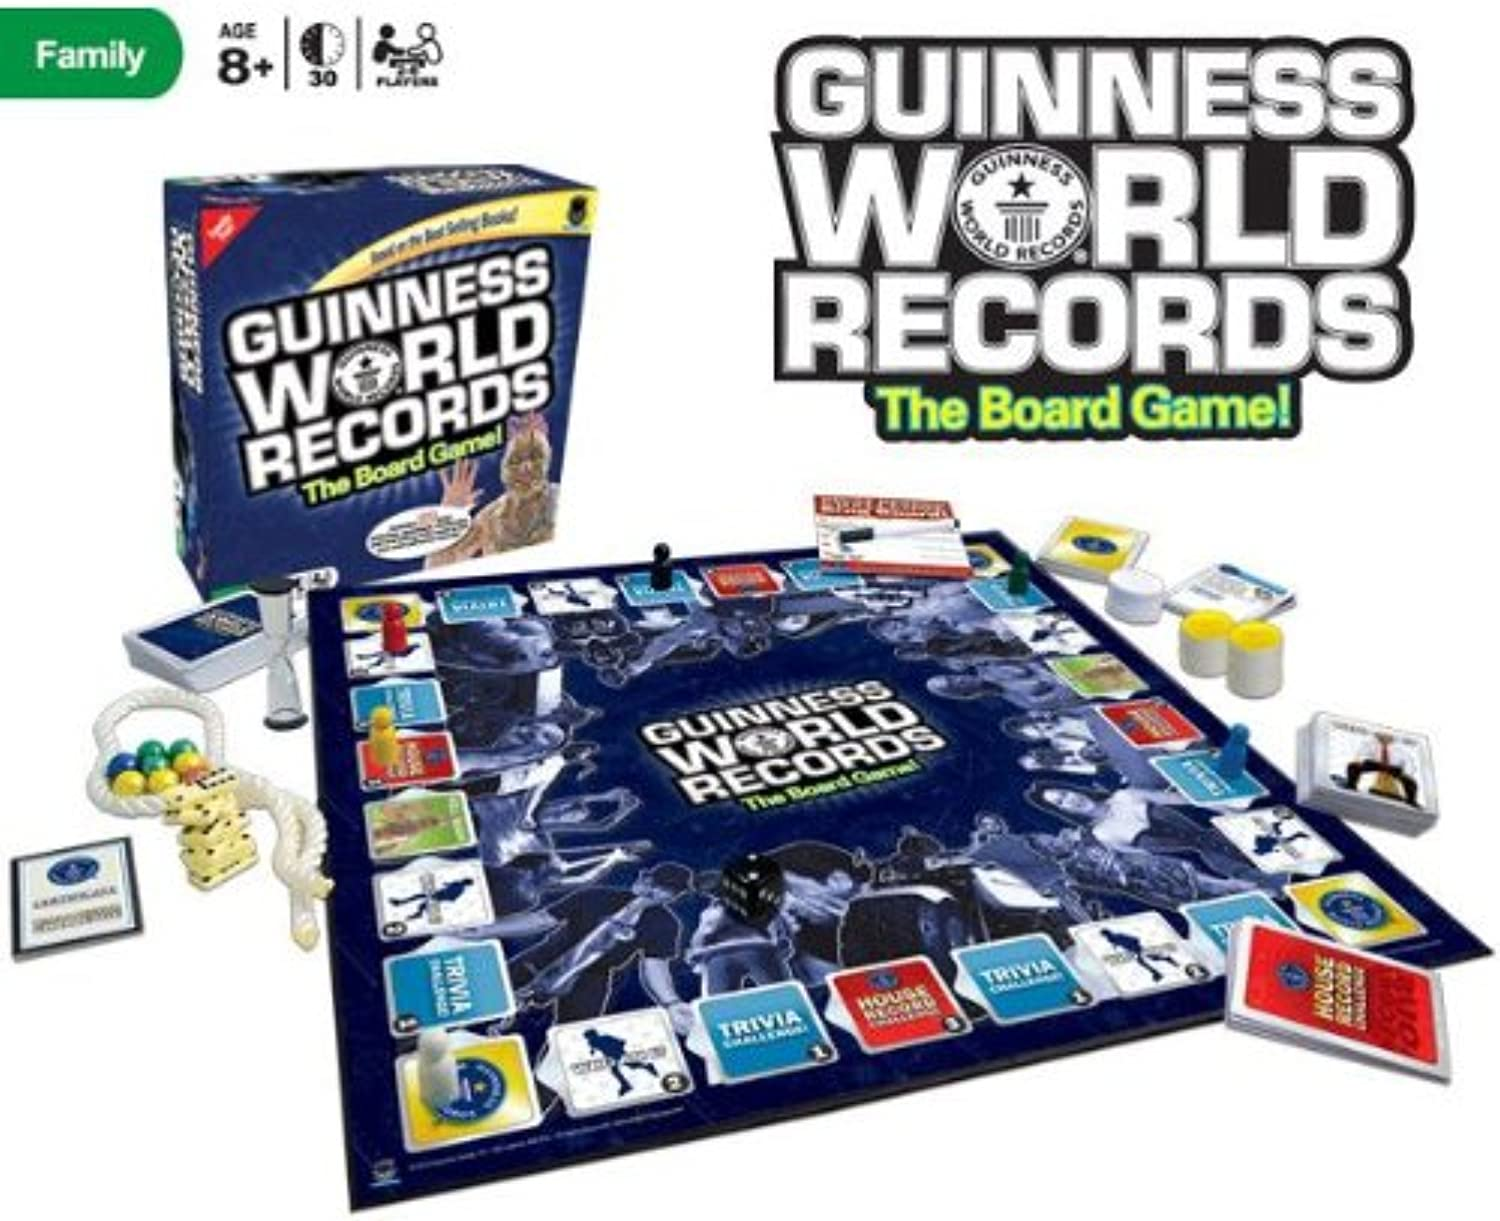 Guinness World Records The Board Game